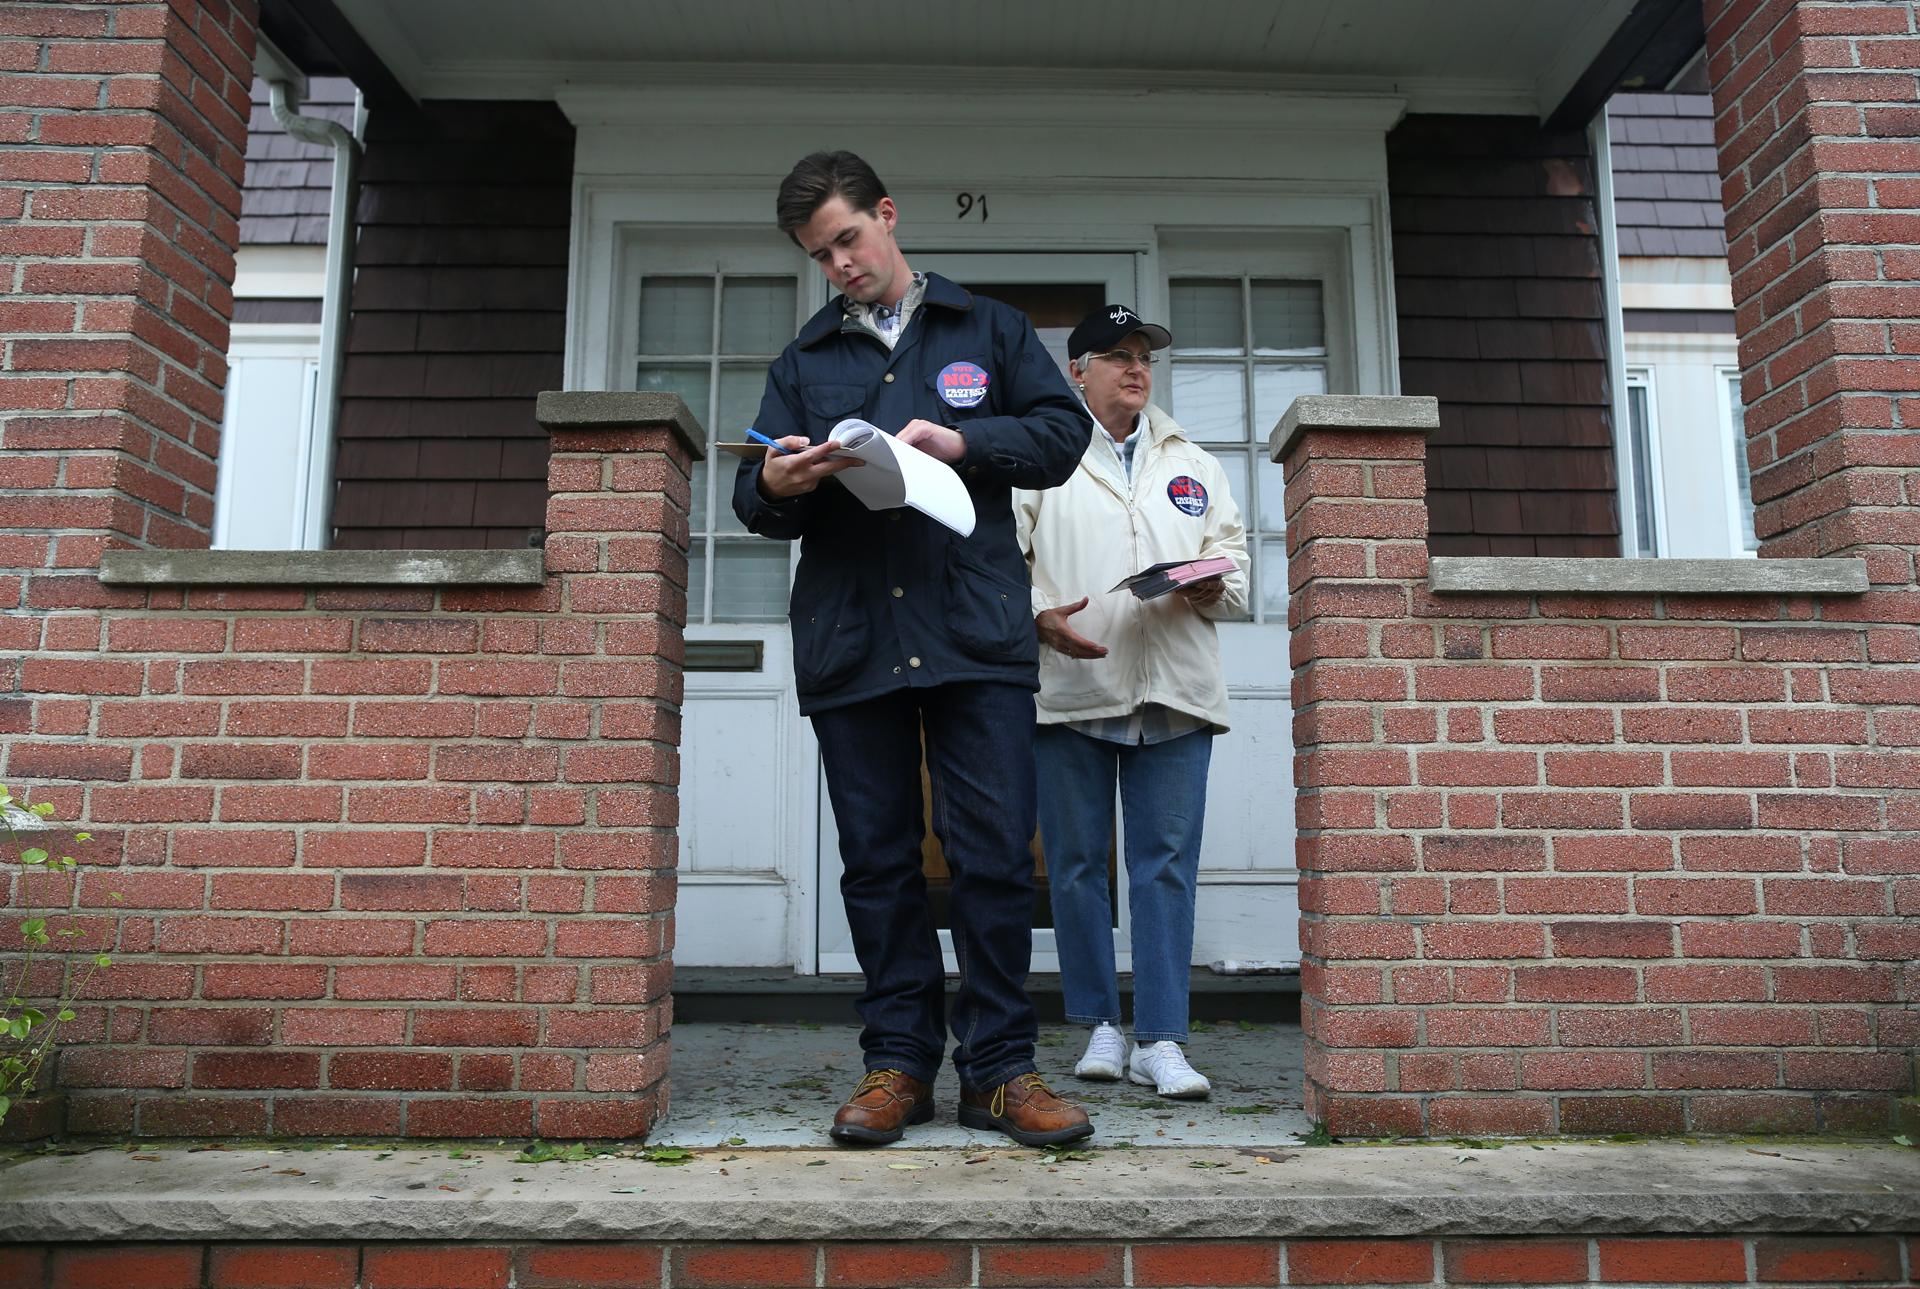 Ryan Holmes and LouAnne Zawodny canvassed in Chelsea to encourage voters to oppose the referendum.